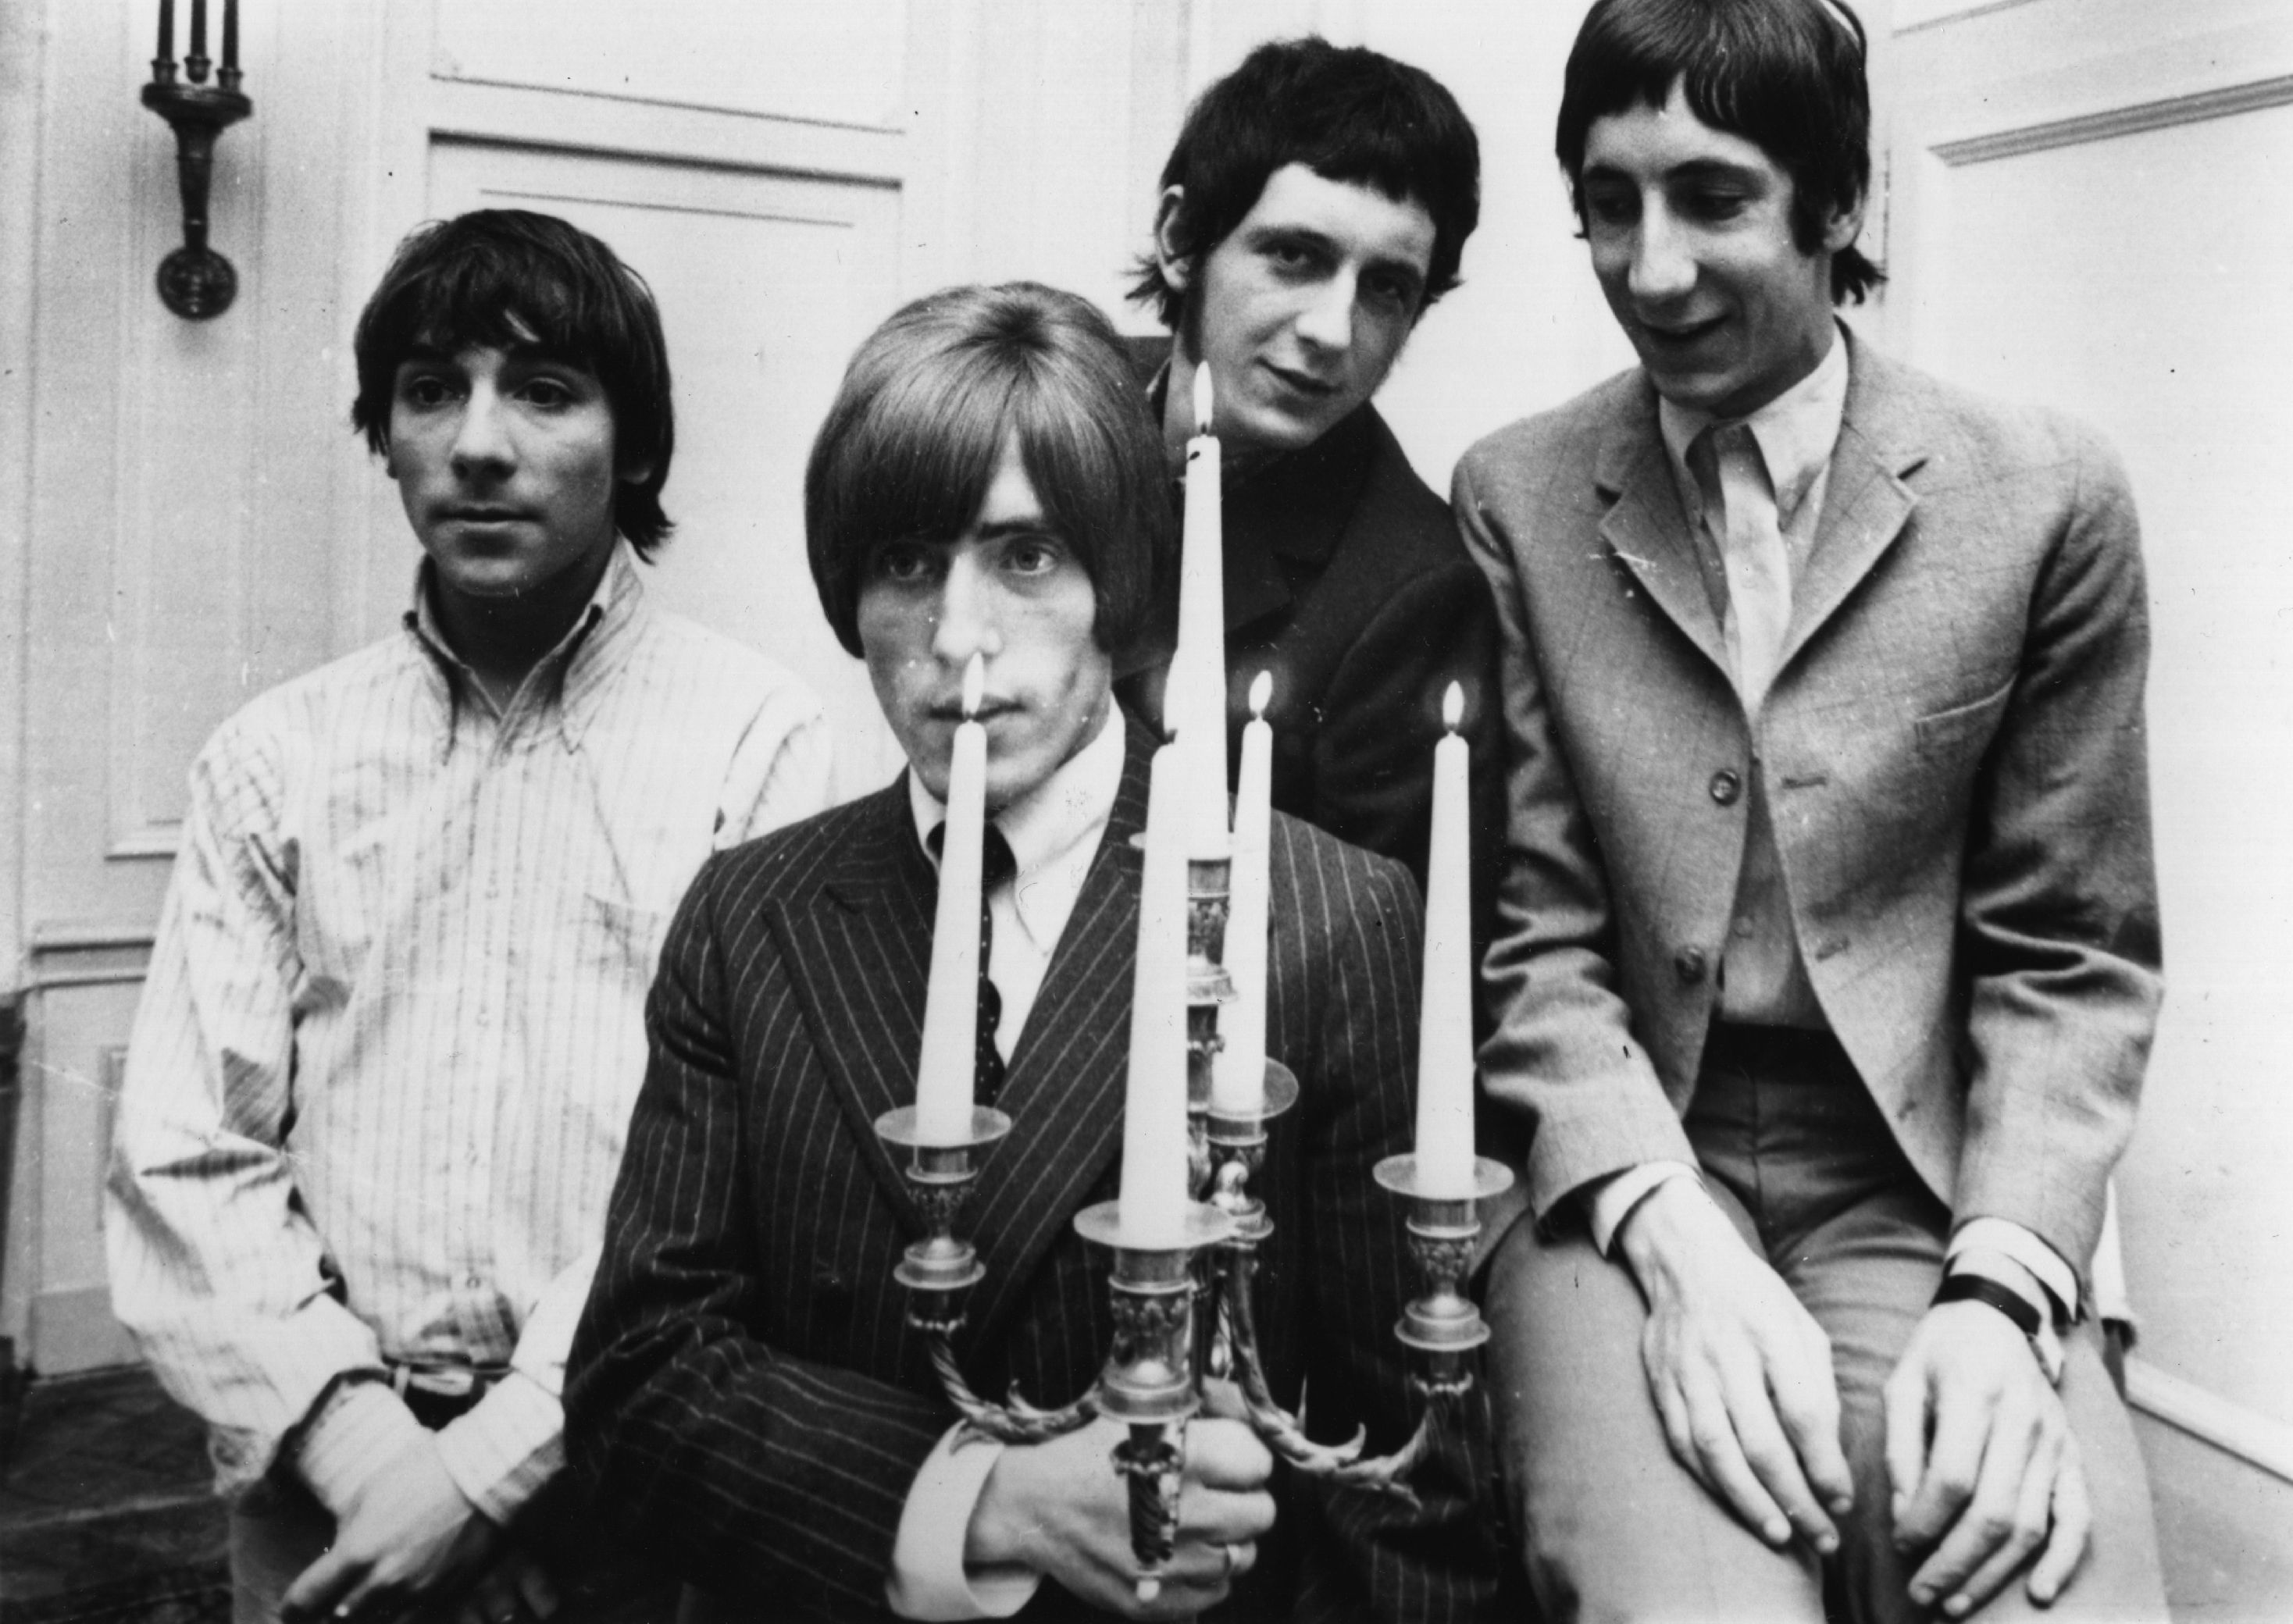 English rock group The Who, during their 1966 German/Swiss tour, from left to right; drummer Keith Moon (1947 - 1978), Roger Daltrey (vocals), John Entwistle (1944 - 2002, bass guitar) and Pete Townshend (guitar).    (Photo by Keystone/Getty Images)